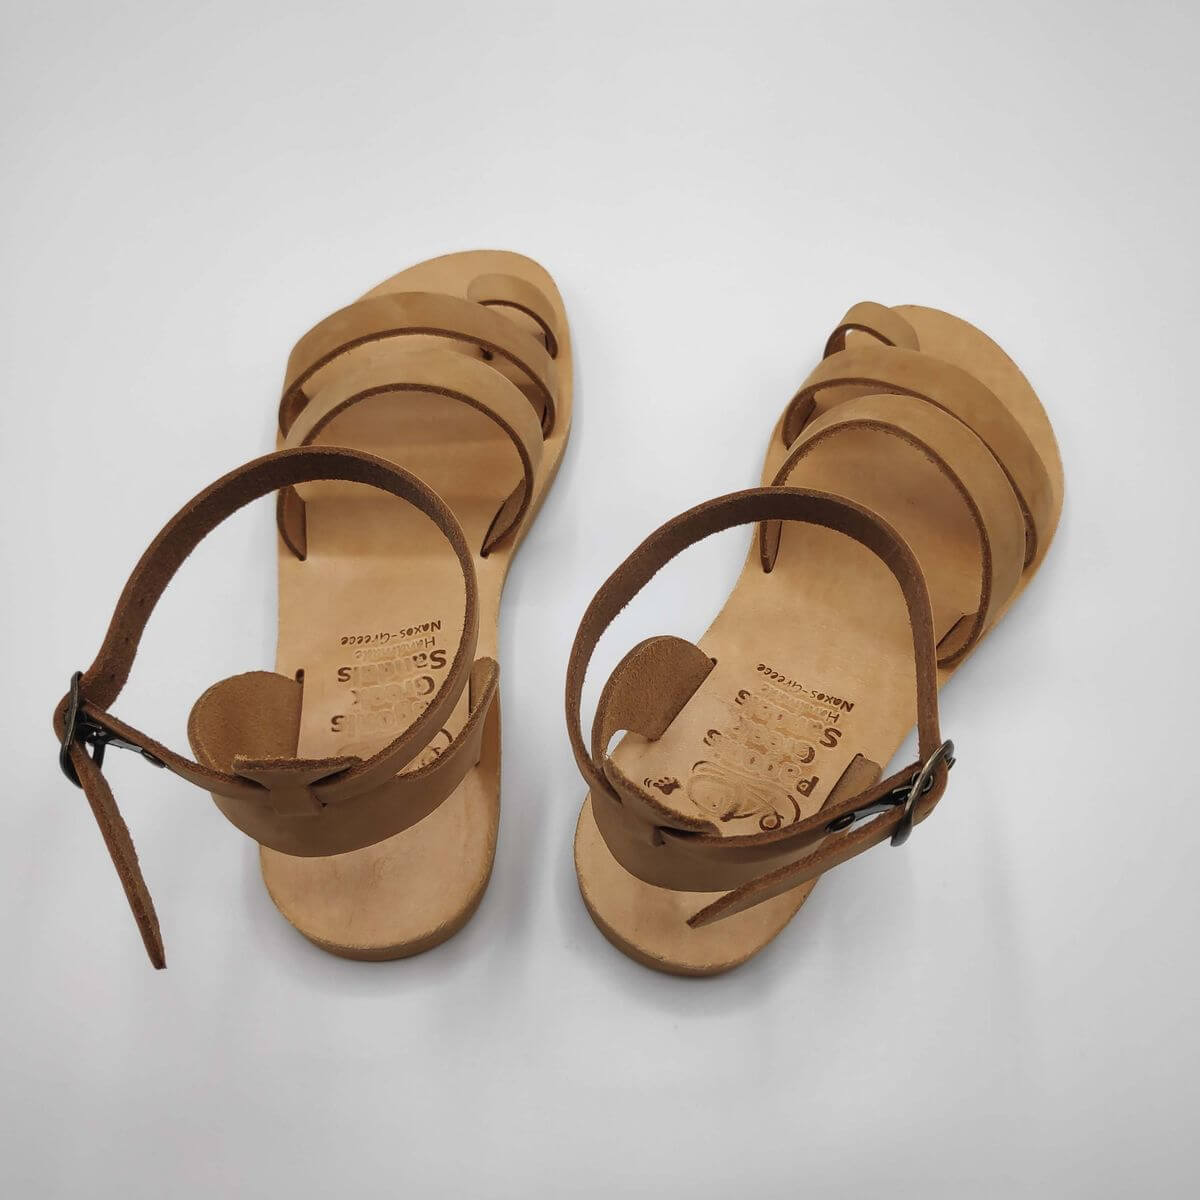 Nude nubuck leather dressy sandals with two straps, toe ring and high ankle strap, back view